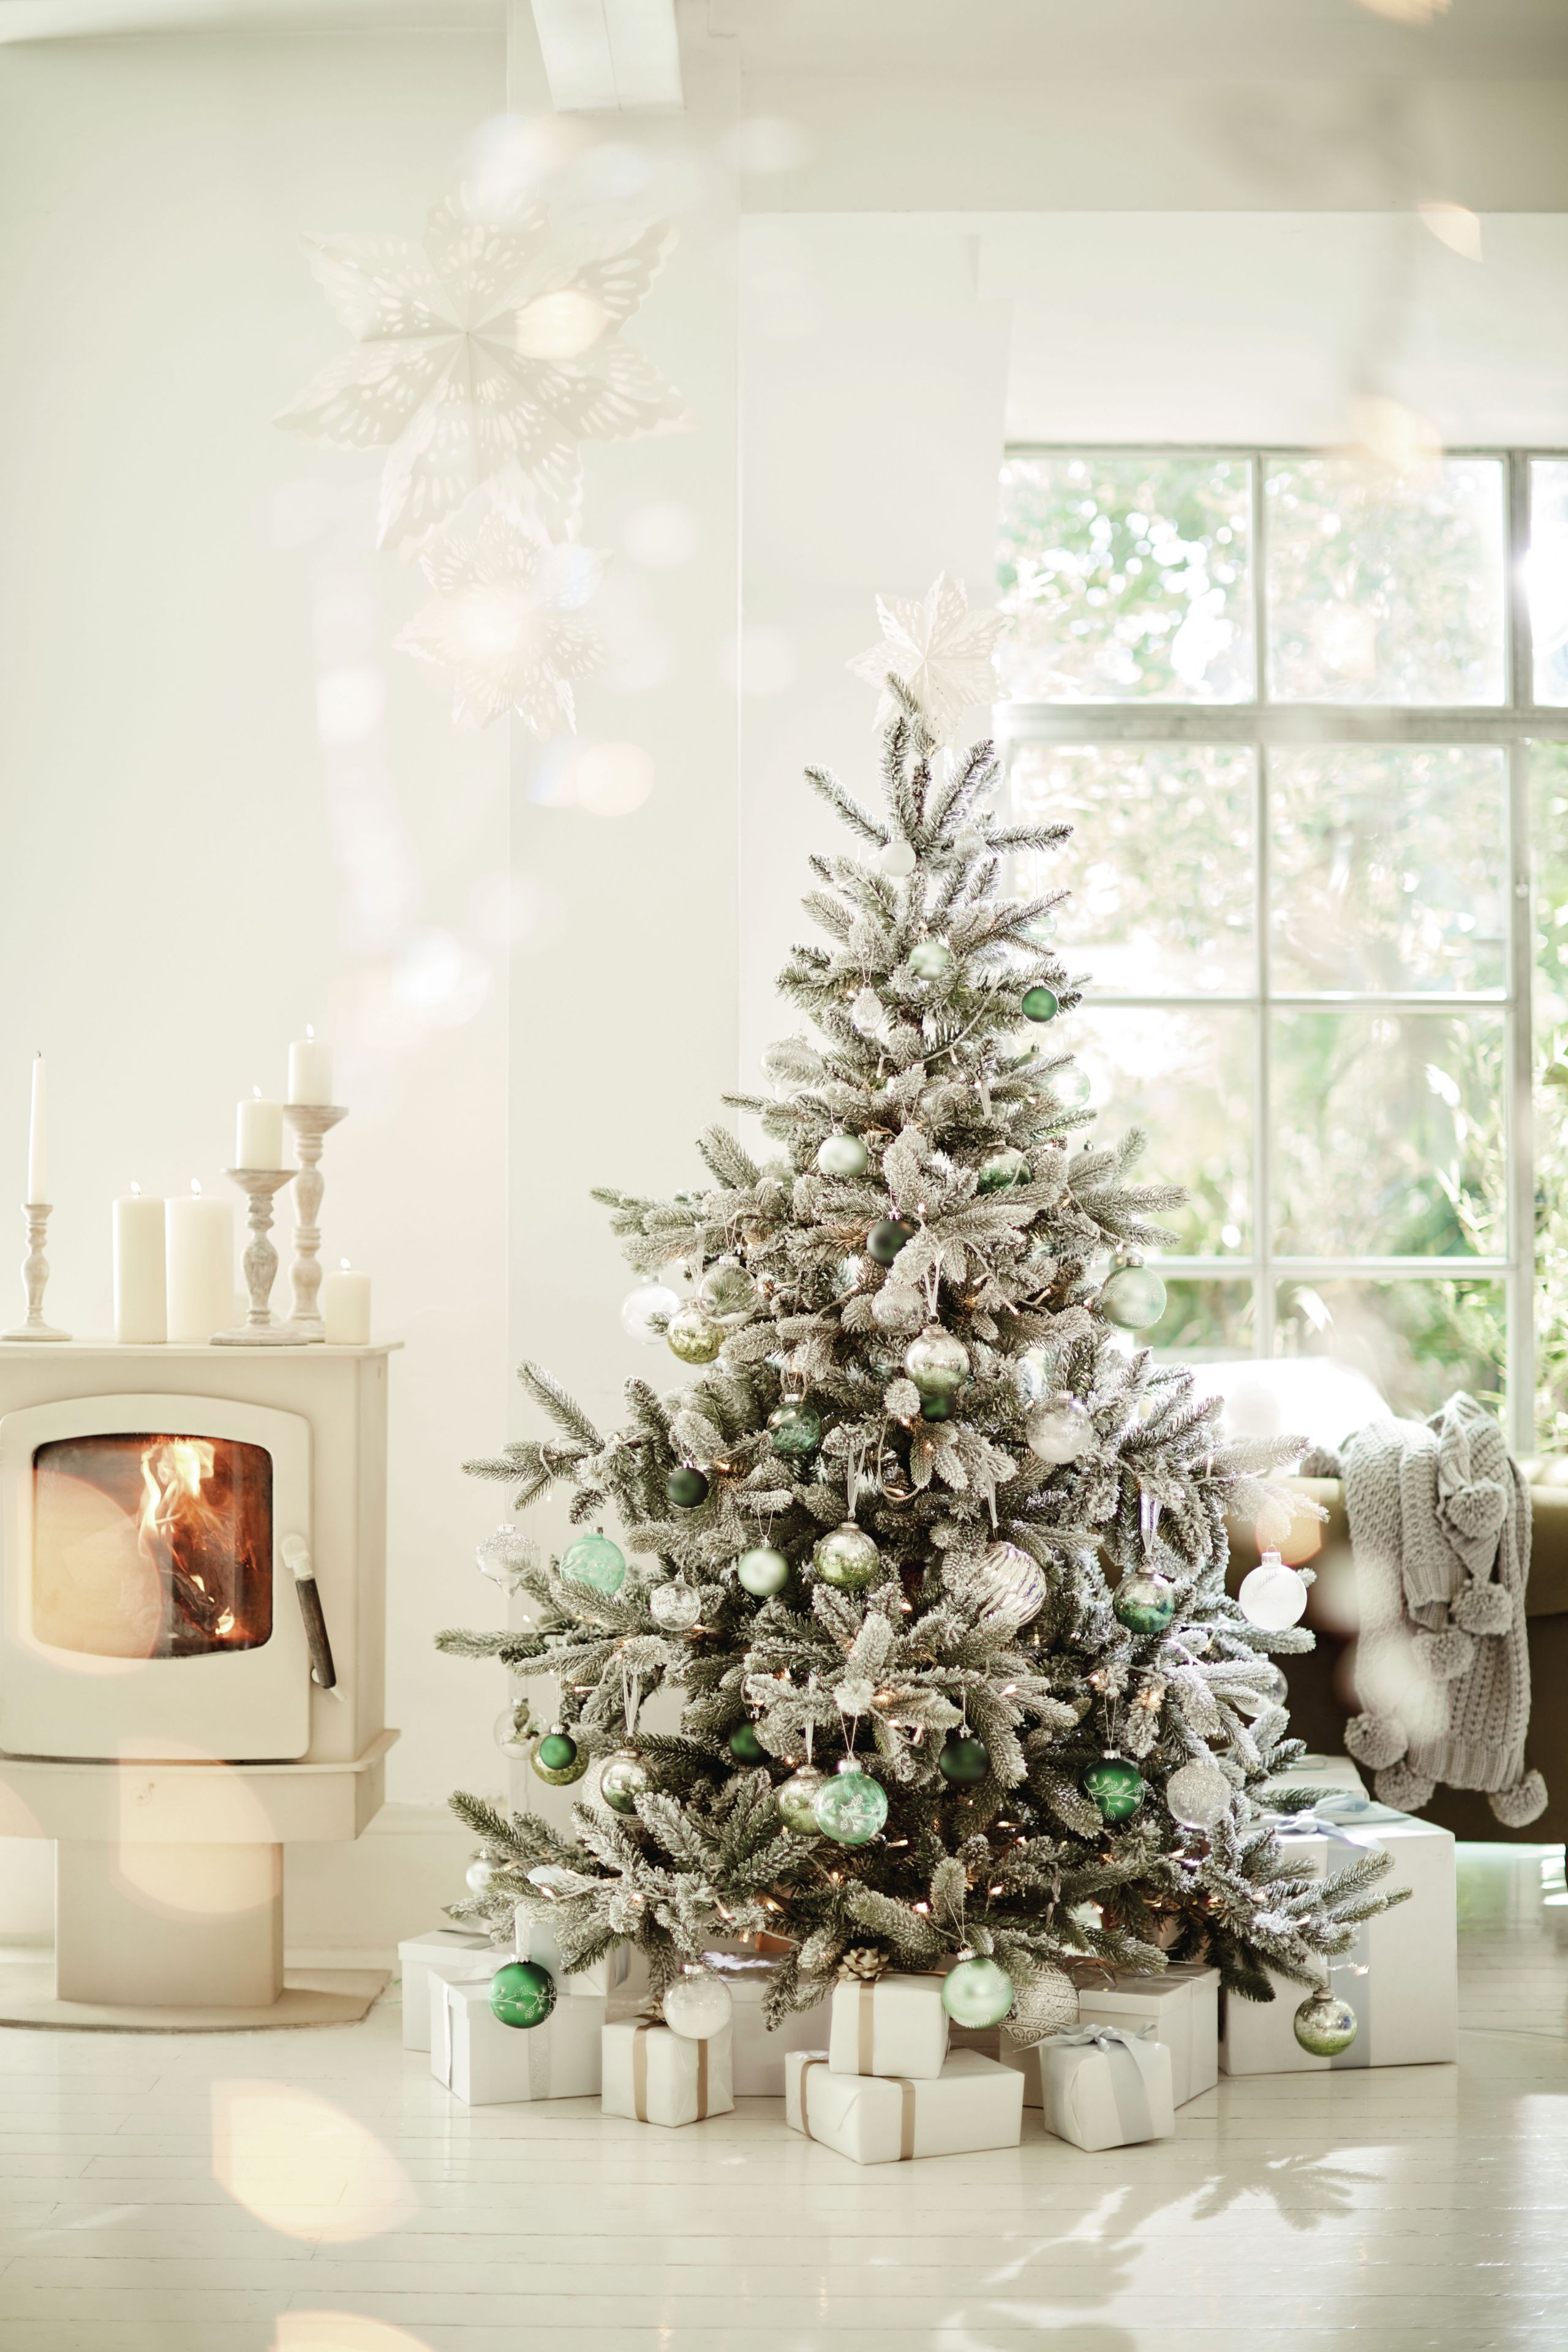 These Are The Best Artificial Christmas Trees With Images Christmas Decorations Apartment Christmas Decorations For The Home Best Artificial Christmas Trees